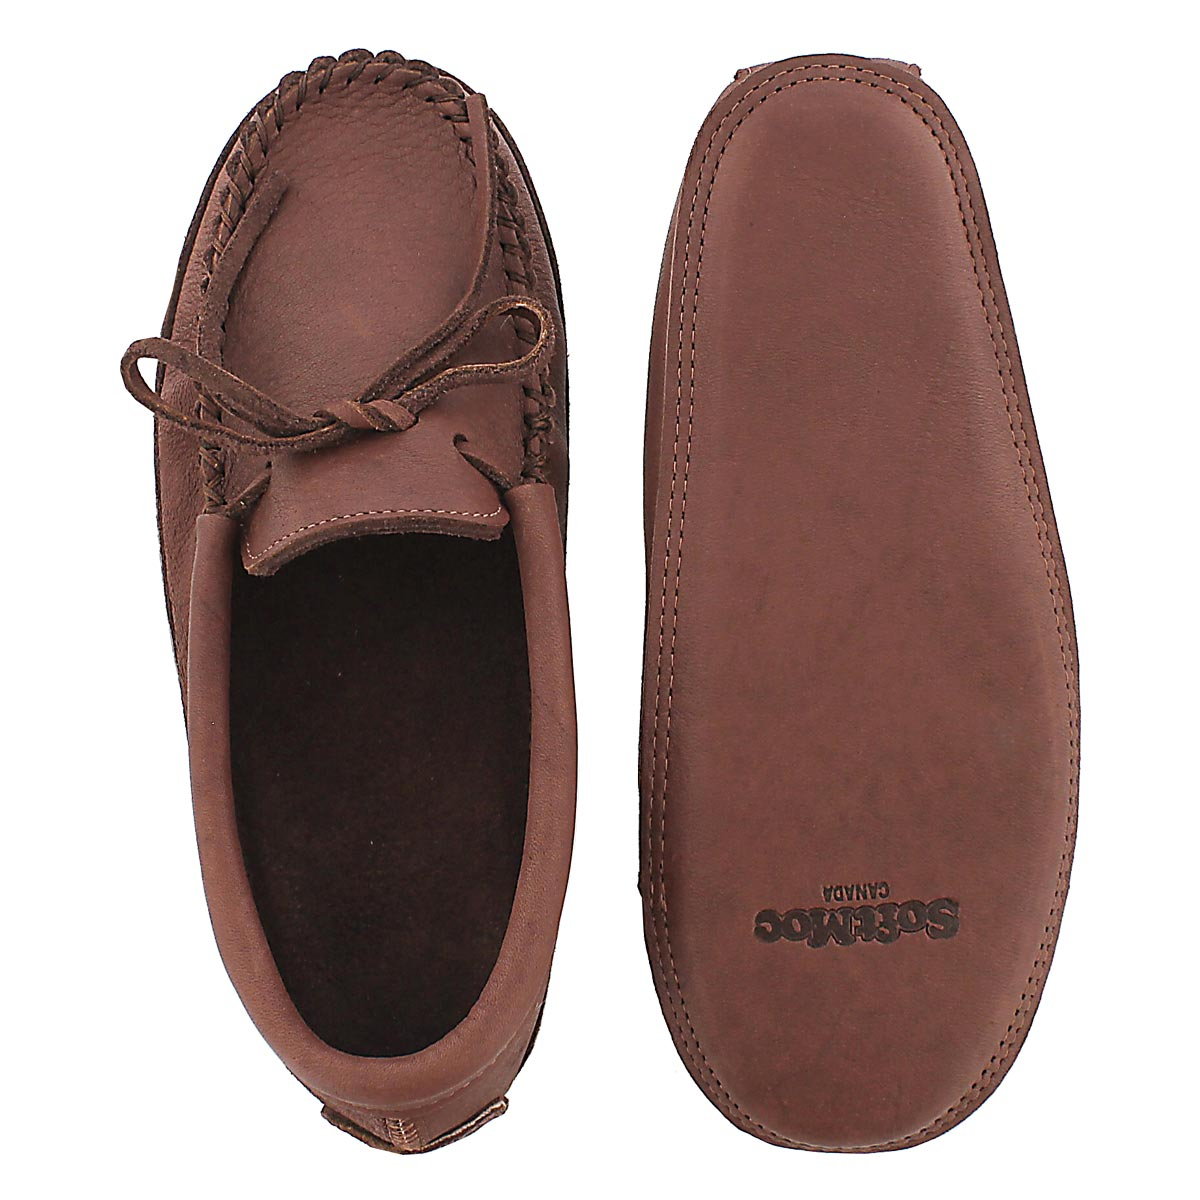 SoftMoc-Men-039-s-3107-Double-Sole-Unlined-Moccasin